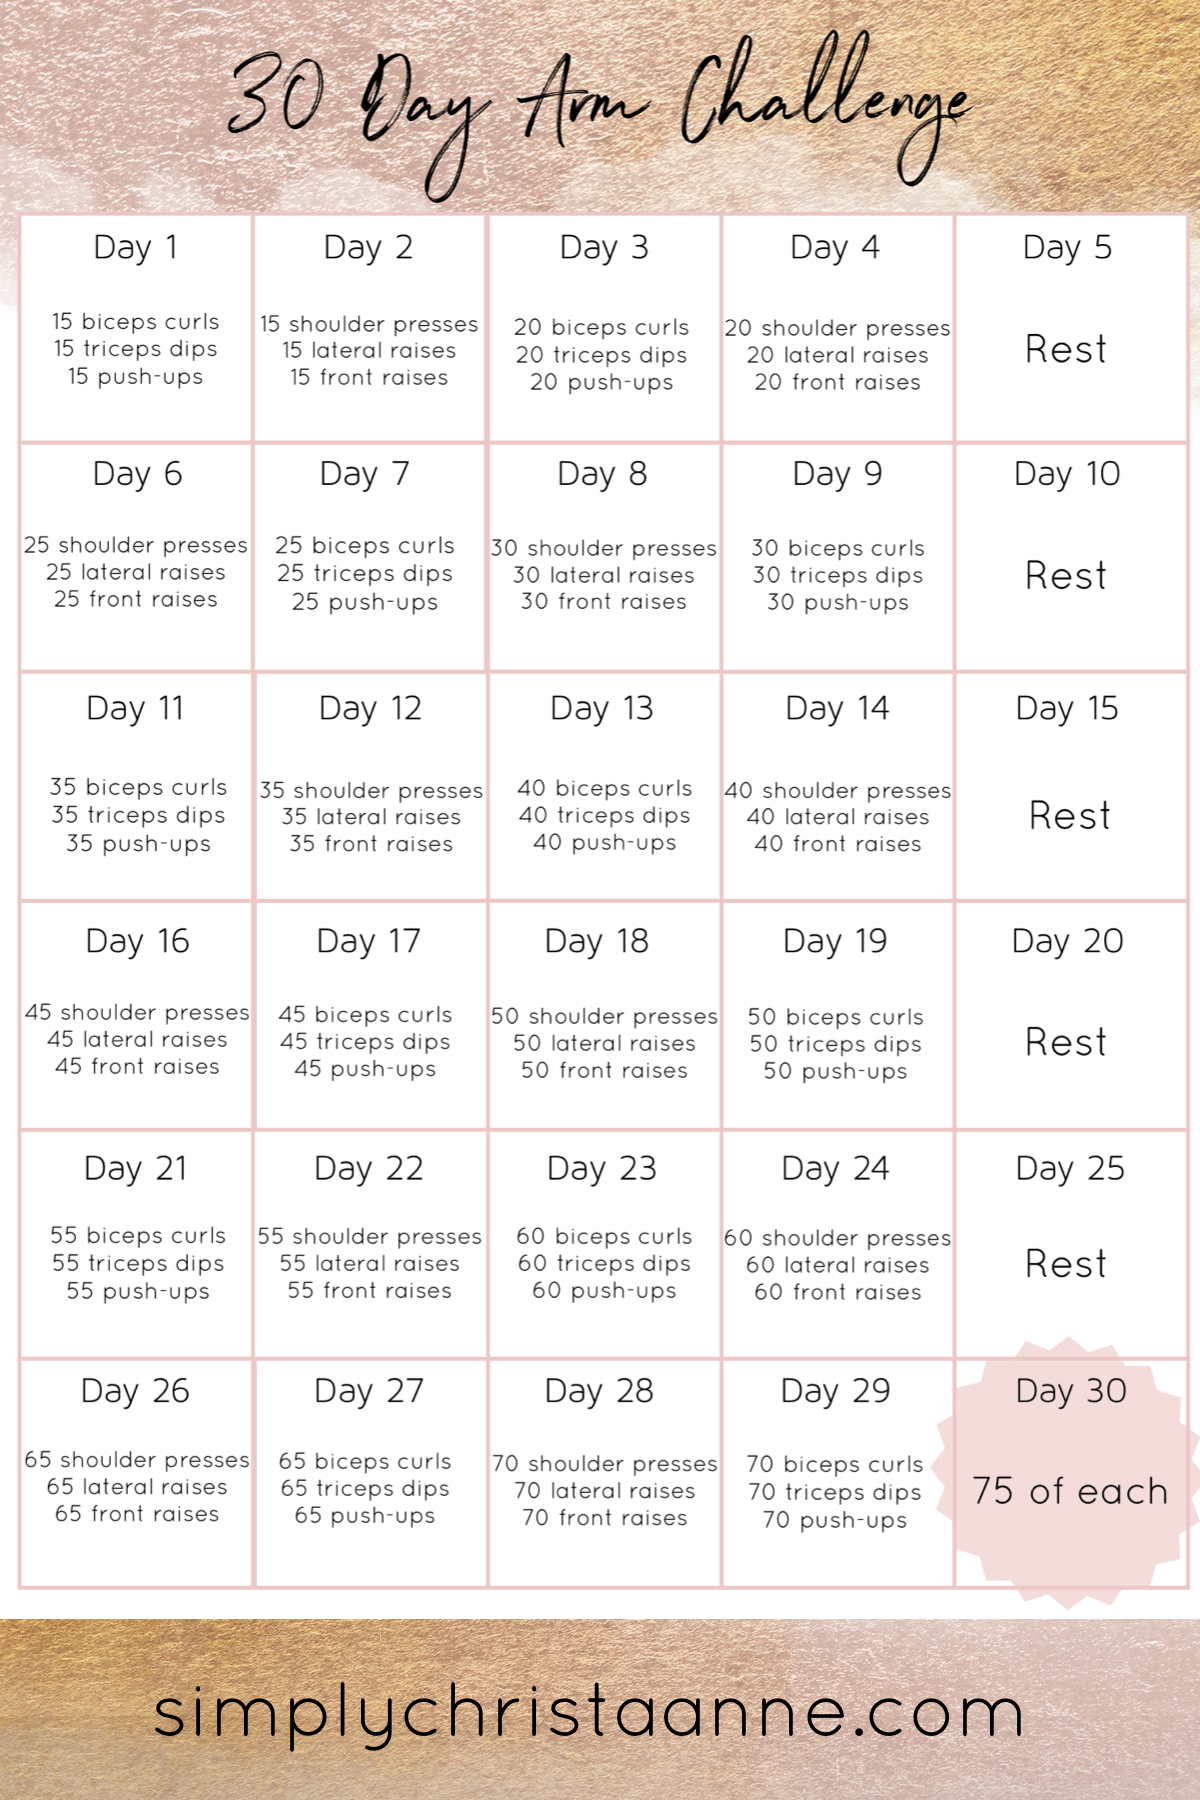 30 Day Arm Challenge ~ Simply Christa Anne